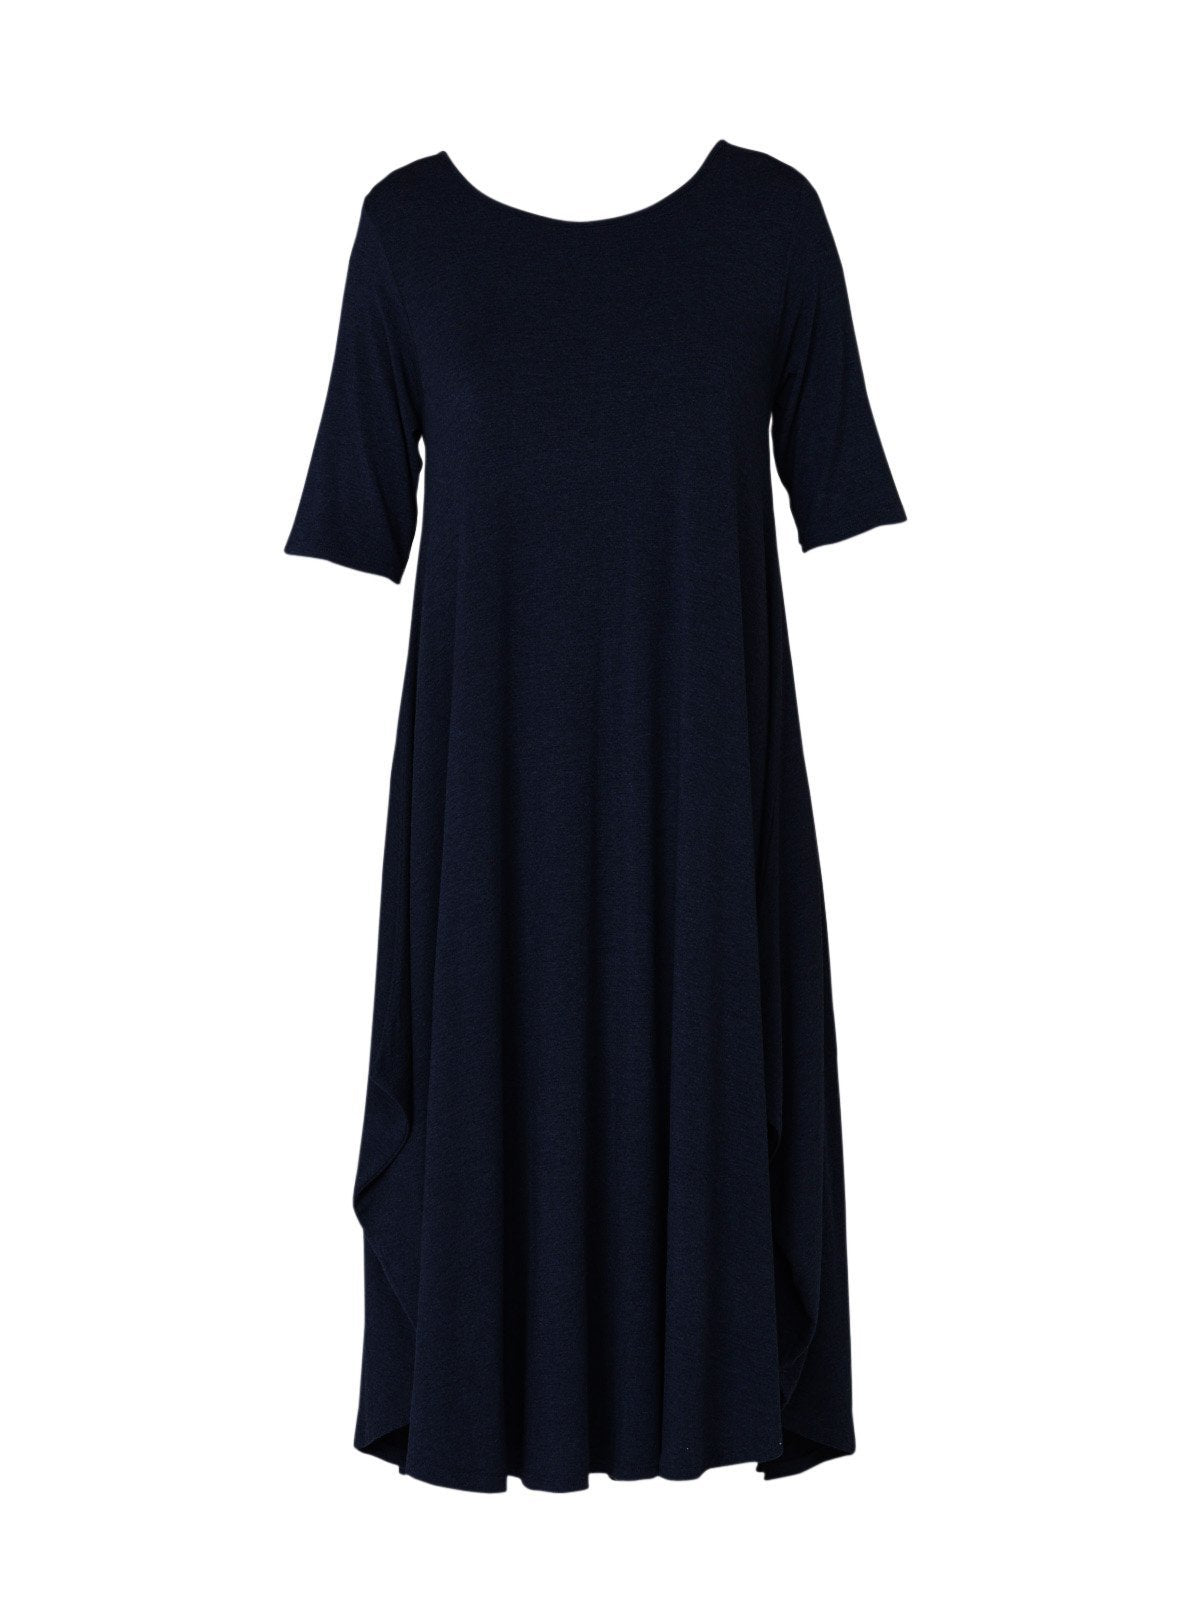 Original Tri Dress in Fig